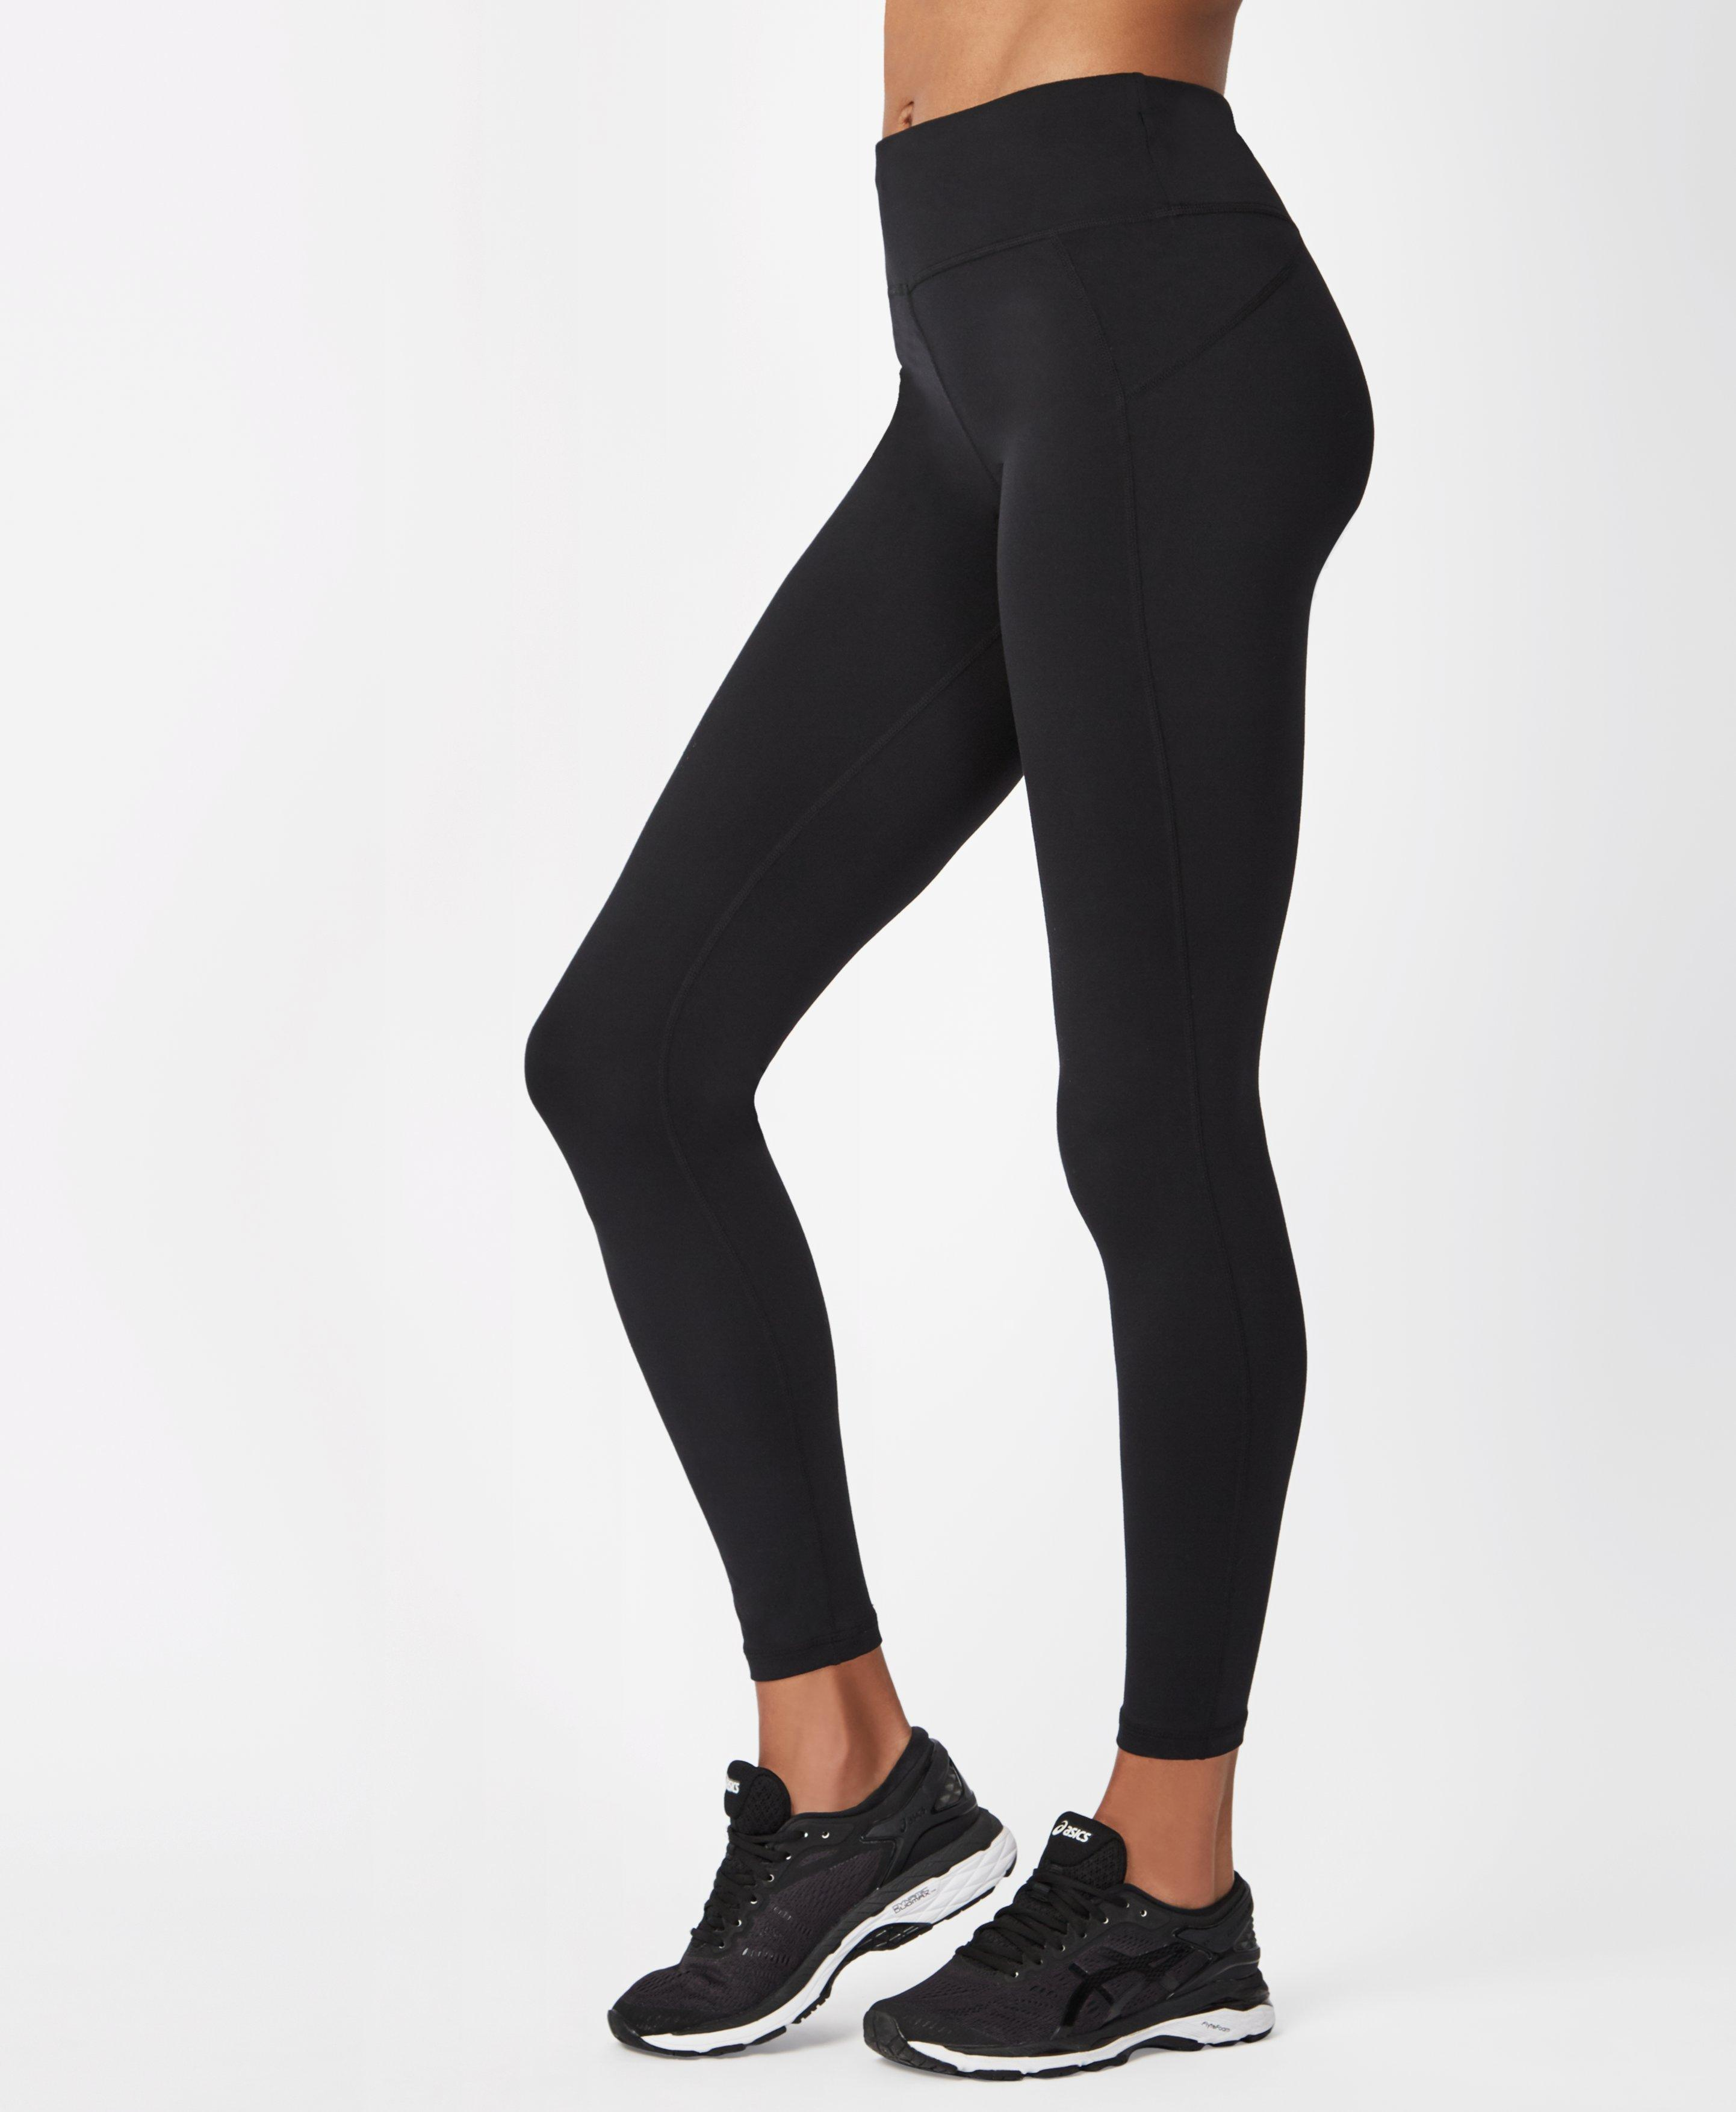 All Day Gym Leggings Black Women S Leggings Www Sweatybetty Com